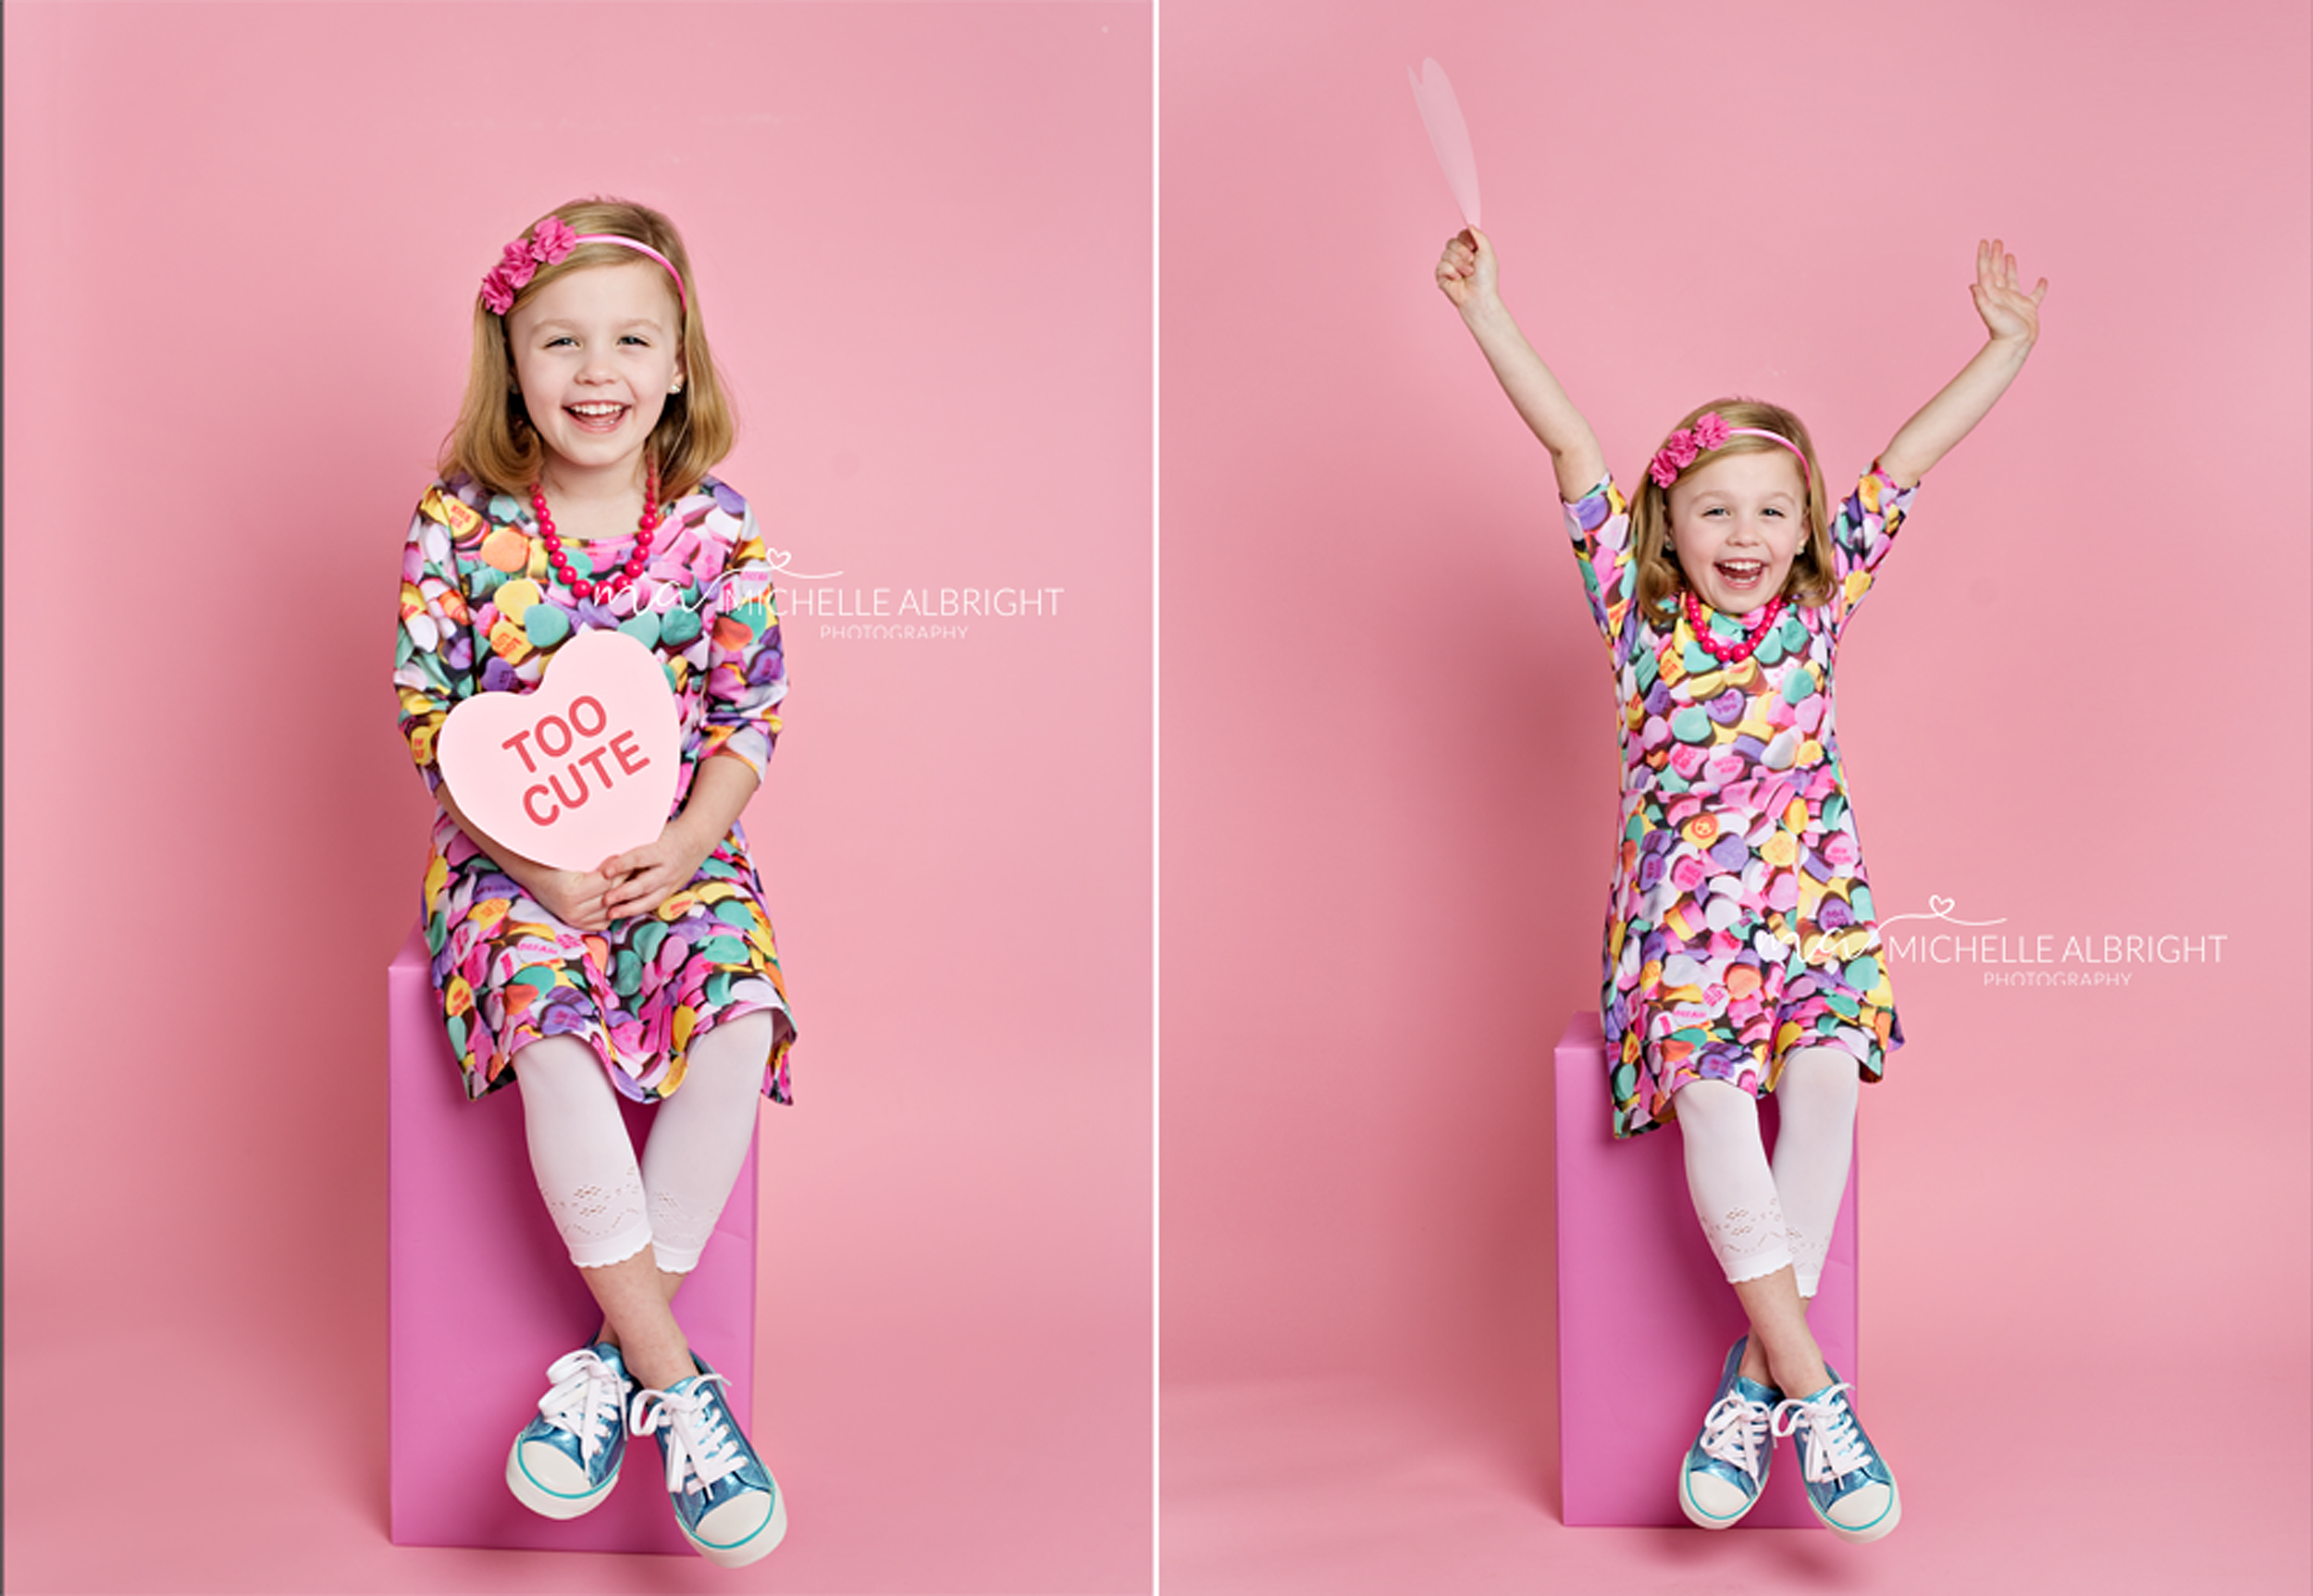 michelle albright photography valentine 2.png